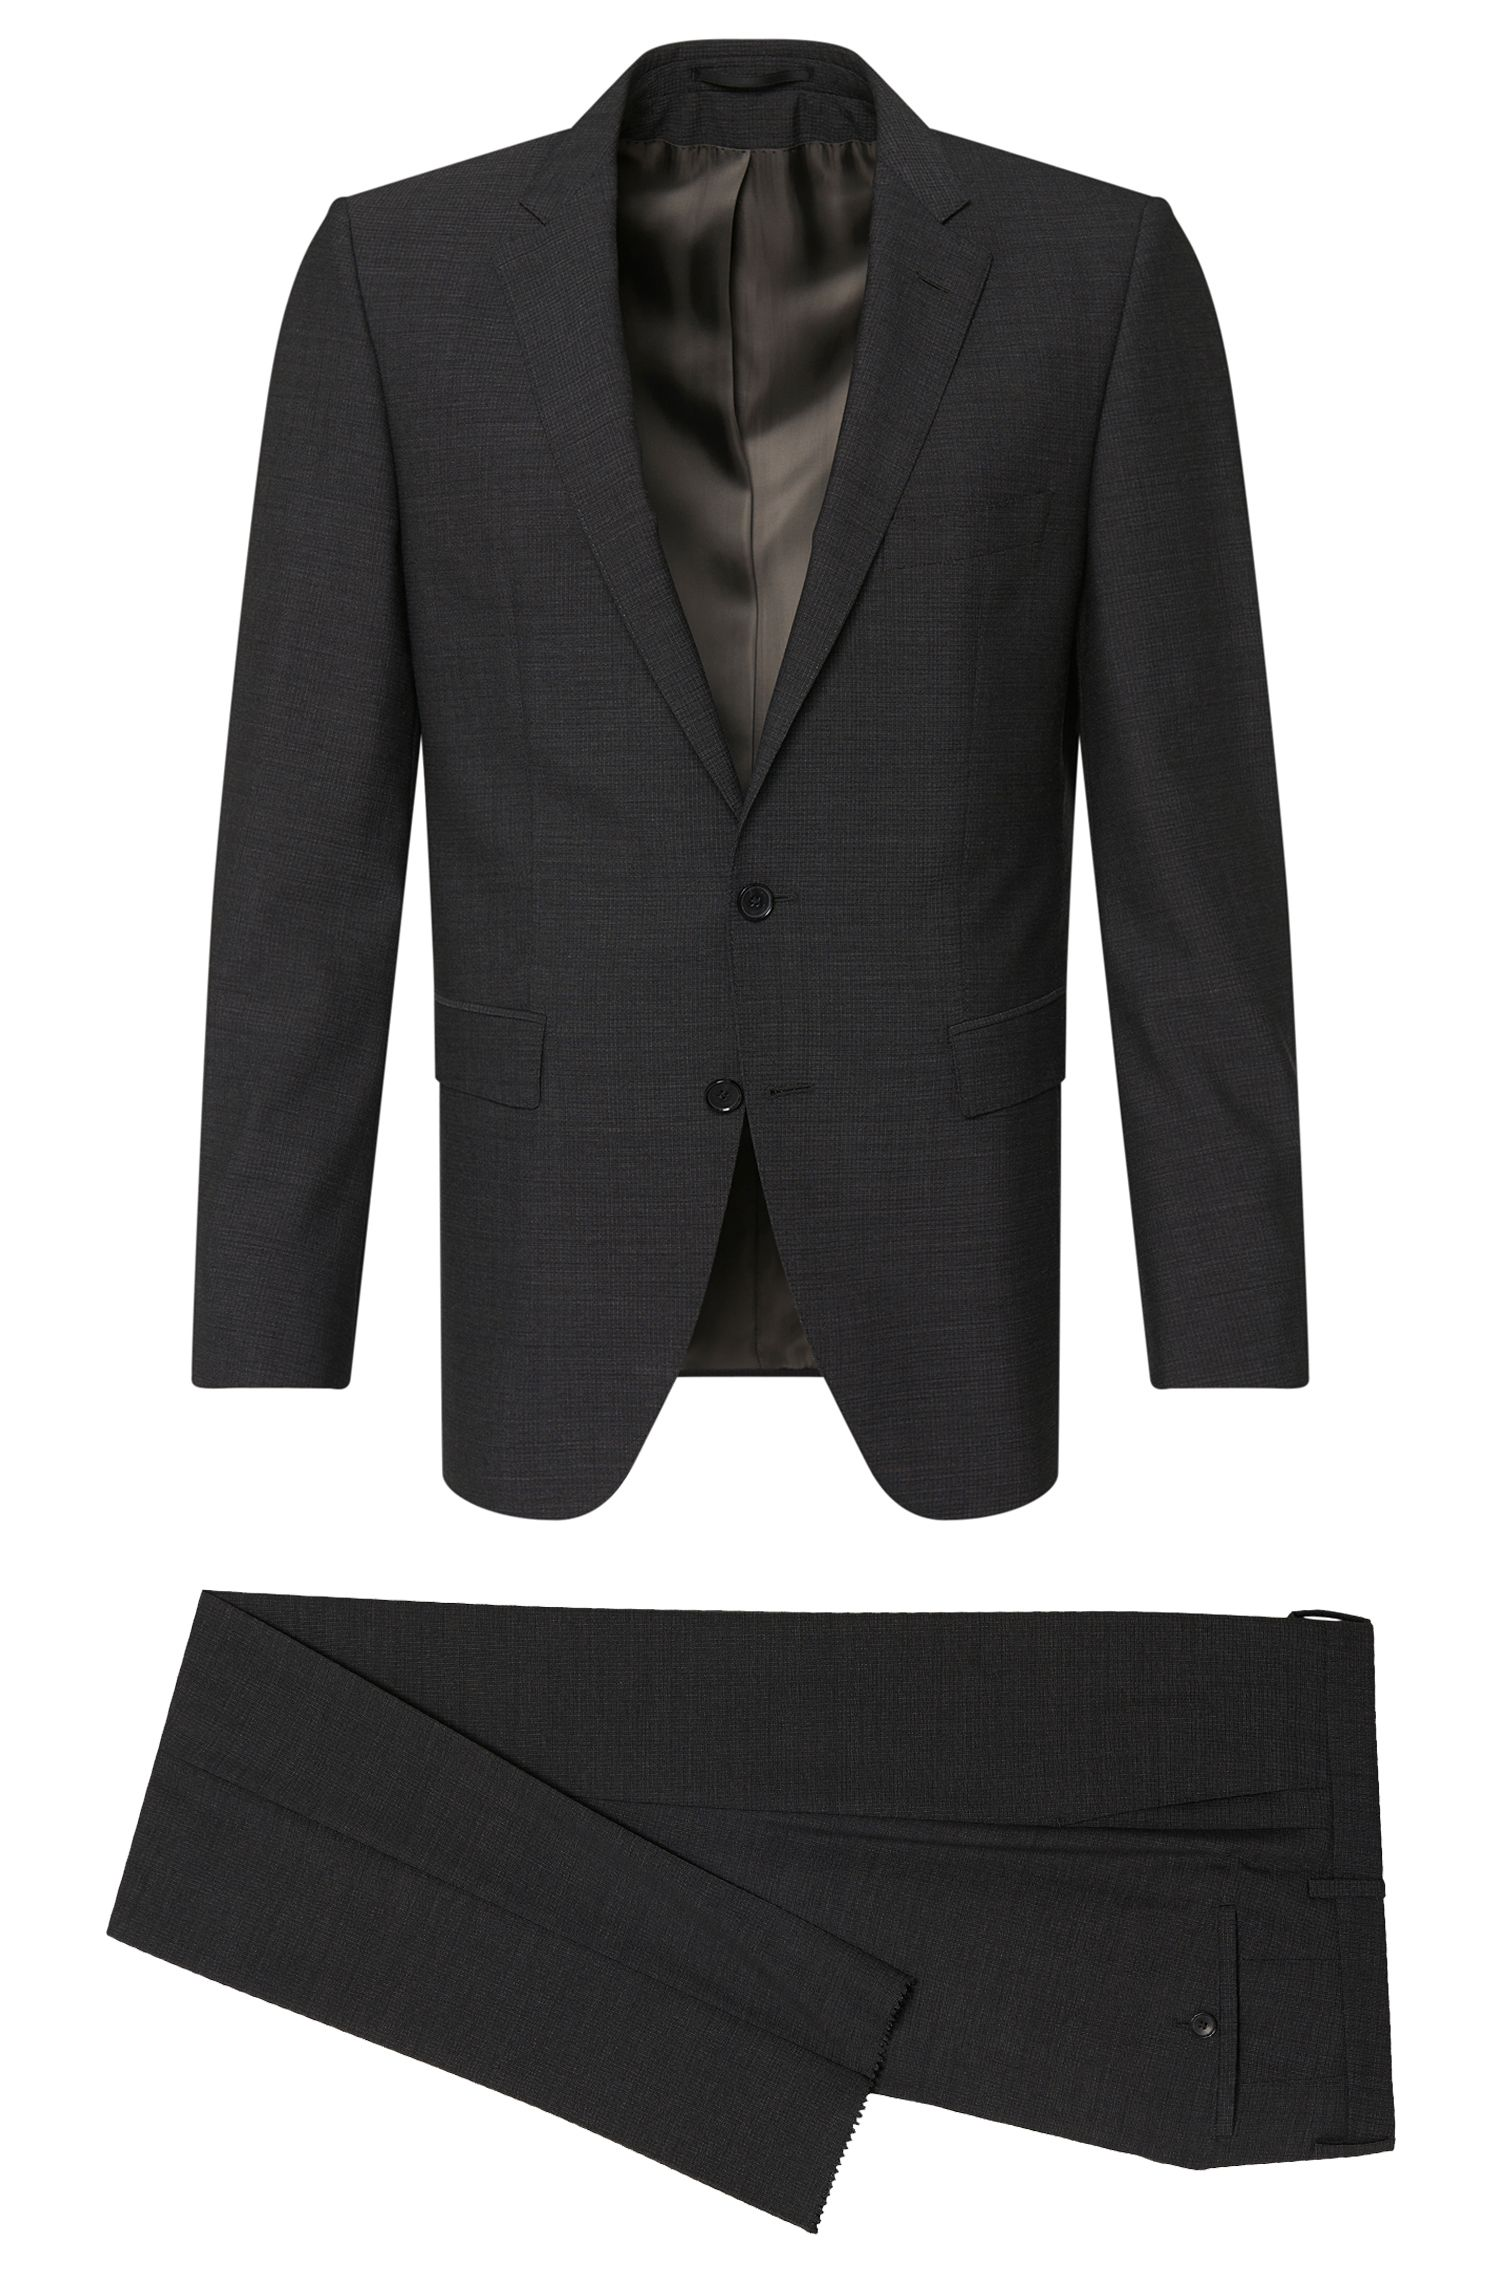 'T-Reeve/Wain' | Extra Slim Fit, Super 130 Italian Wool Suit